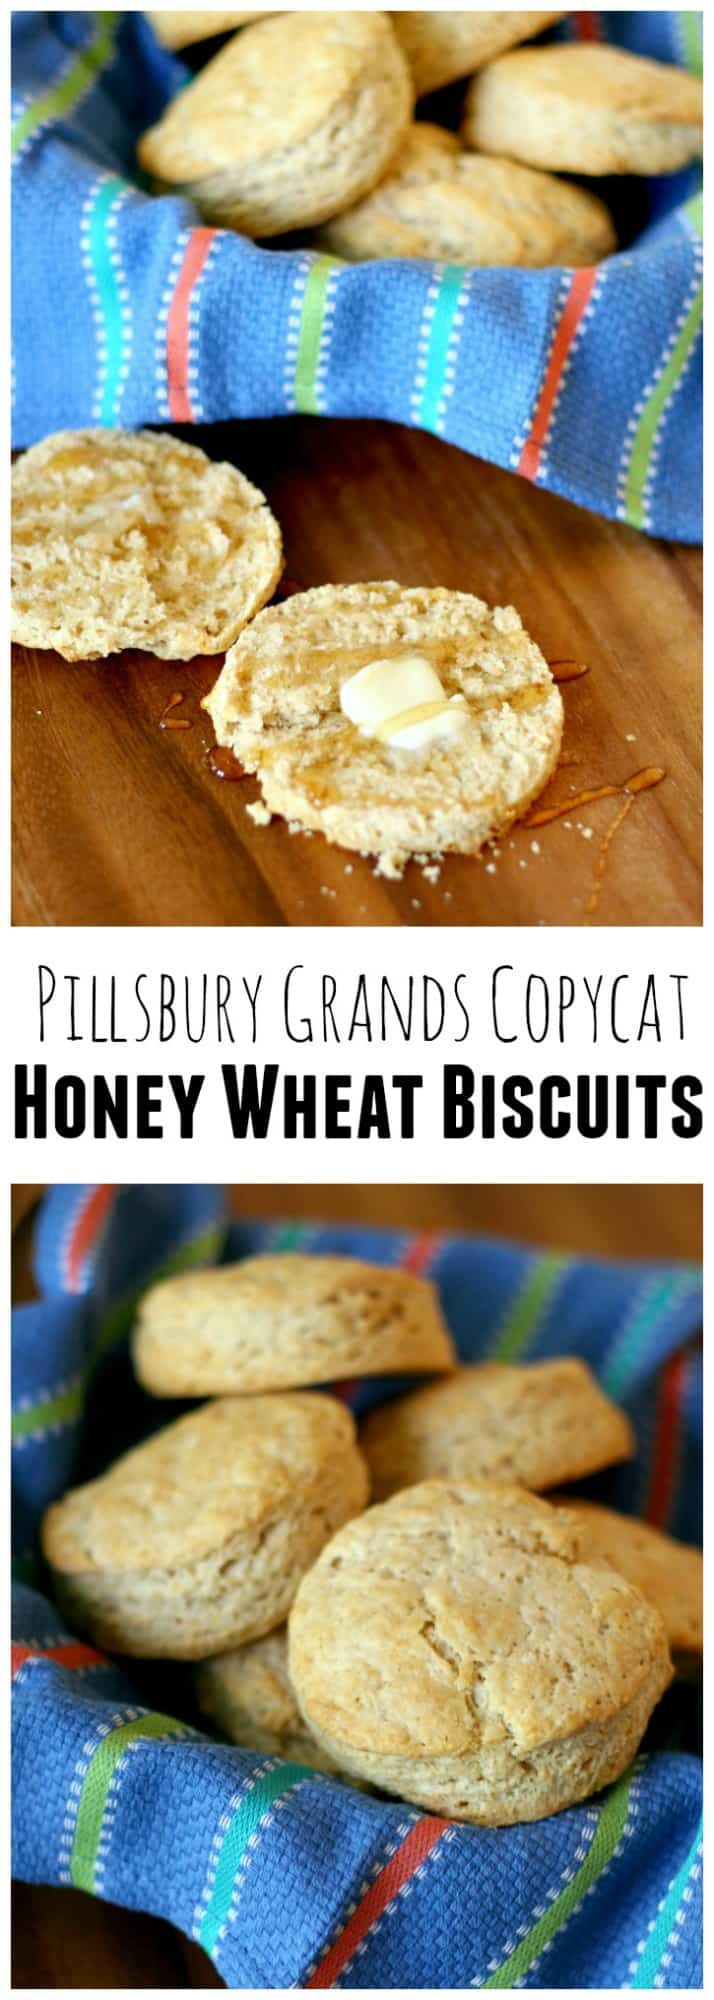 Copycat Pillsbury Grands Homestyle Honey Wheat Biscuits from LauraFuentes.com